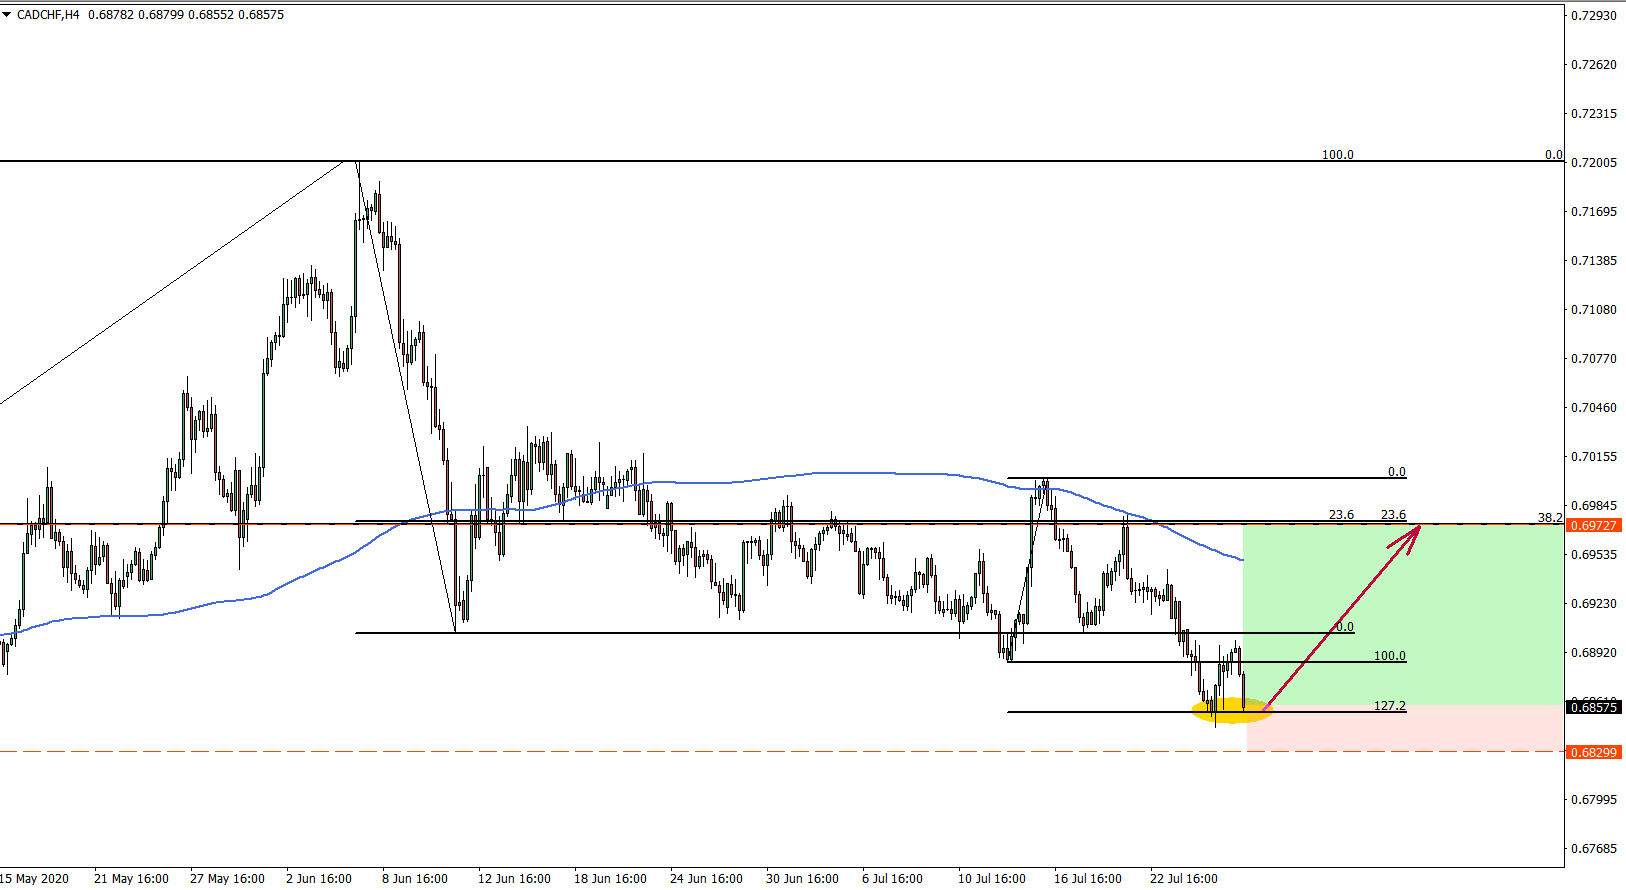 CADCHF 4hour chart July 28 2020